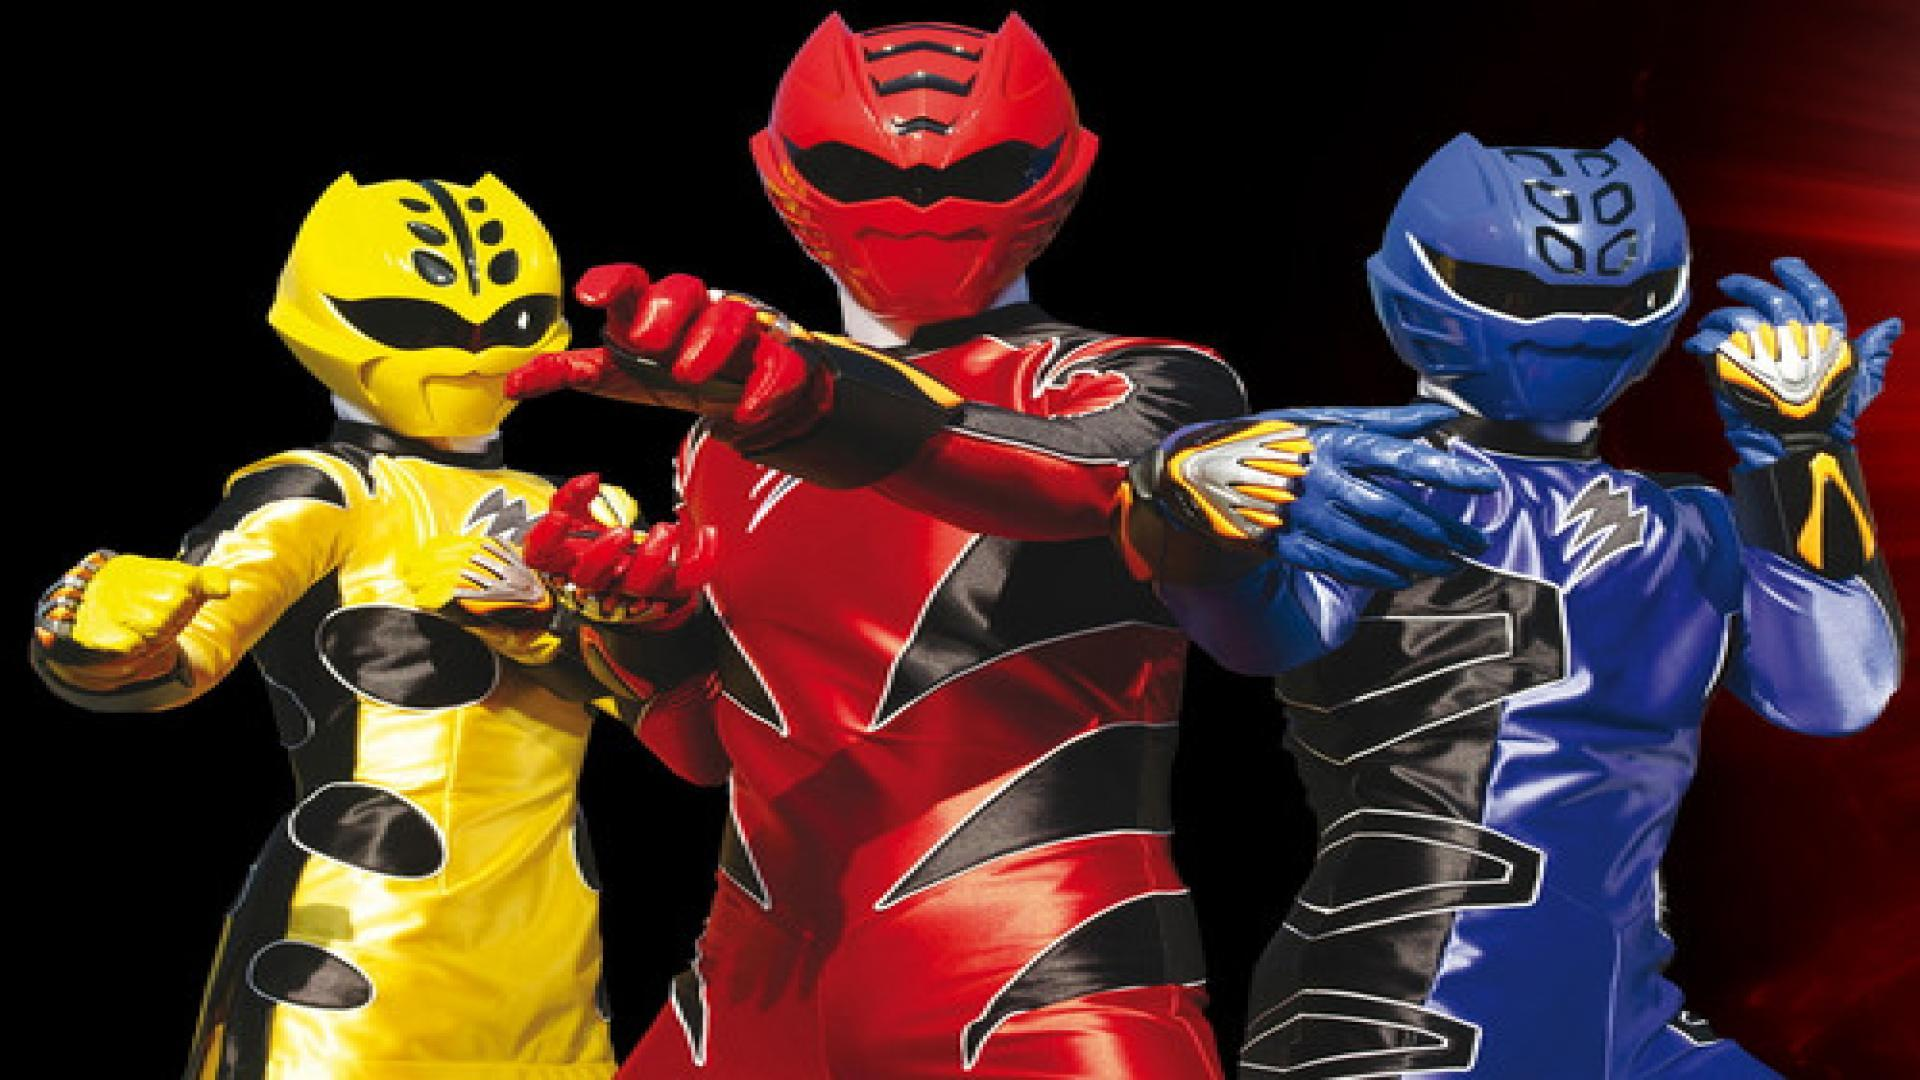 Wallpapers Of Power Rangers Jungle Fury ✓ Fitrini's Wallpaper